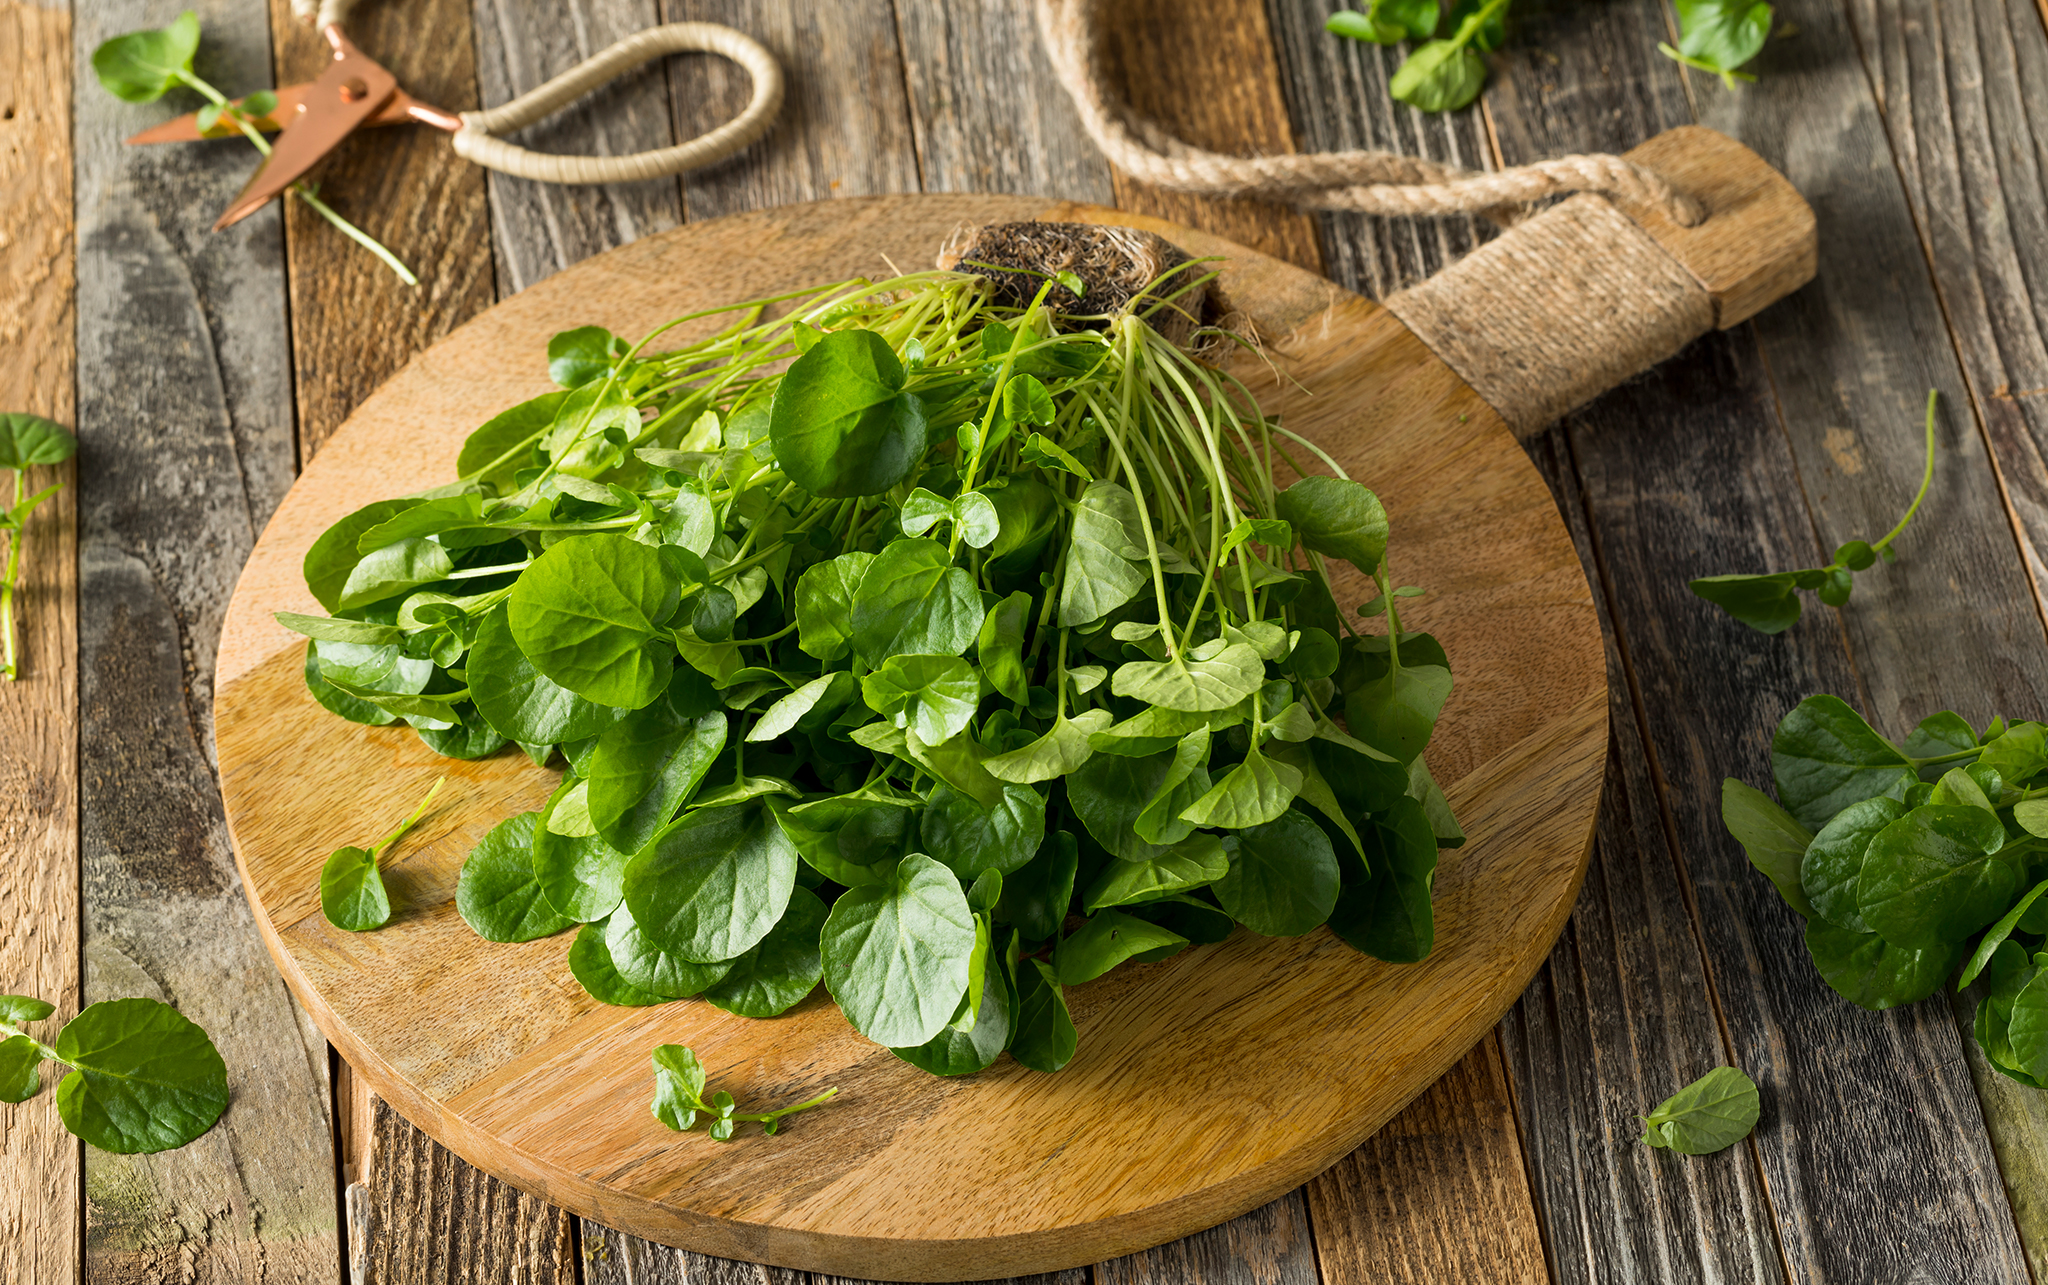 Leafy greens and herbs